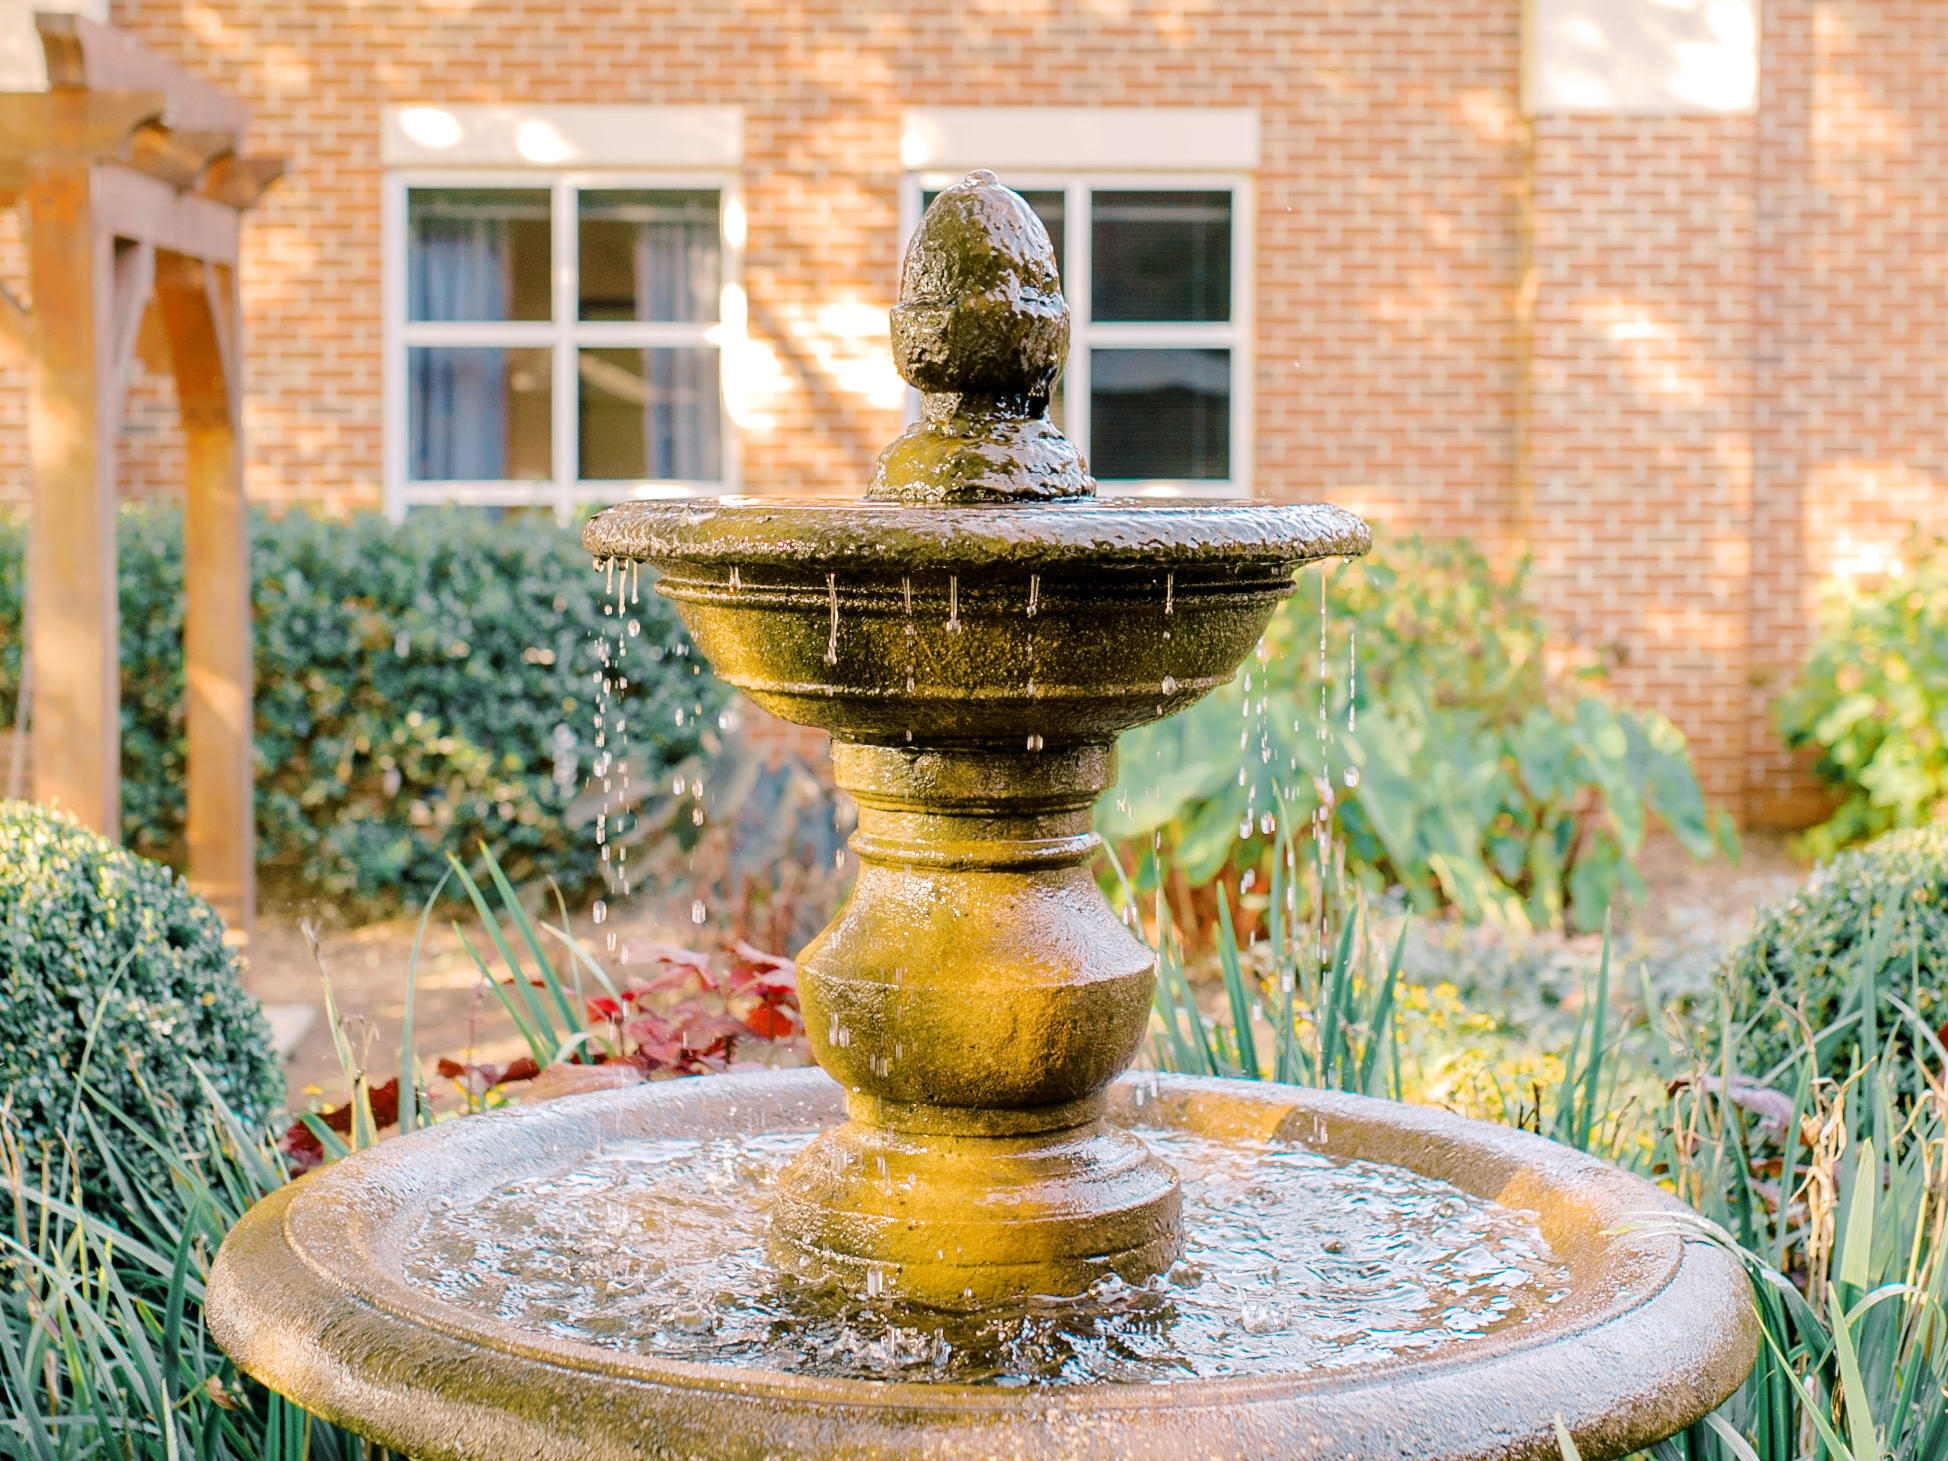 Fountain in patio area with landscaped area surrounding